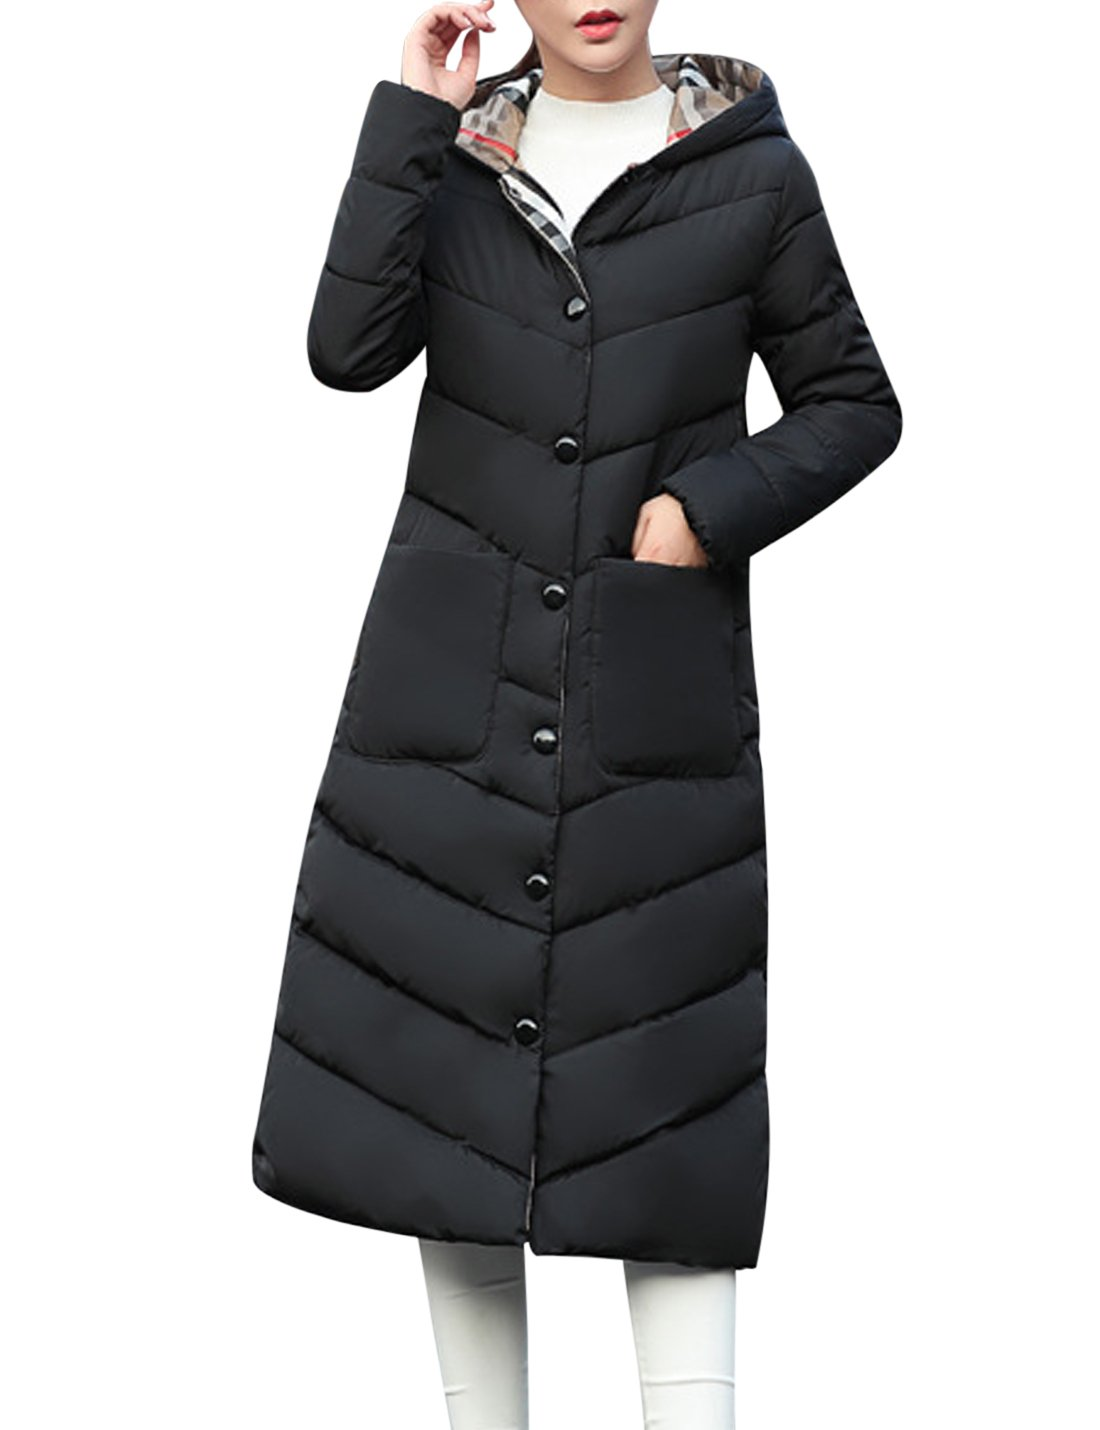 Tanming Women's Winter Warm Cotton Padded Long Coat Outerwear (Large, Black)